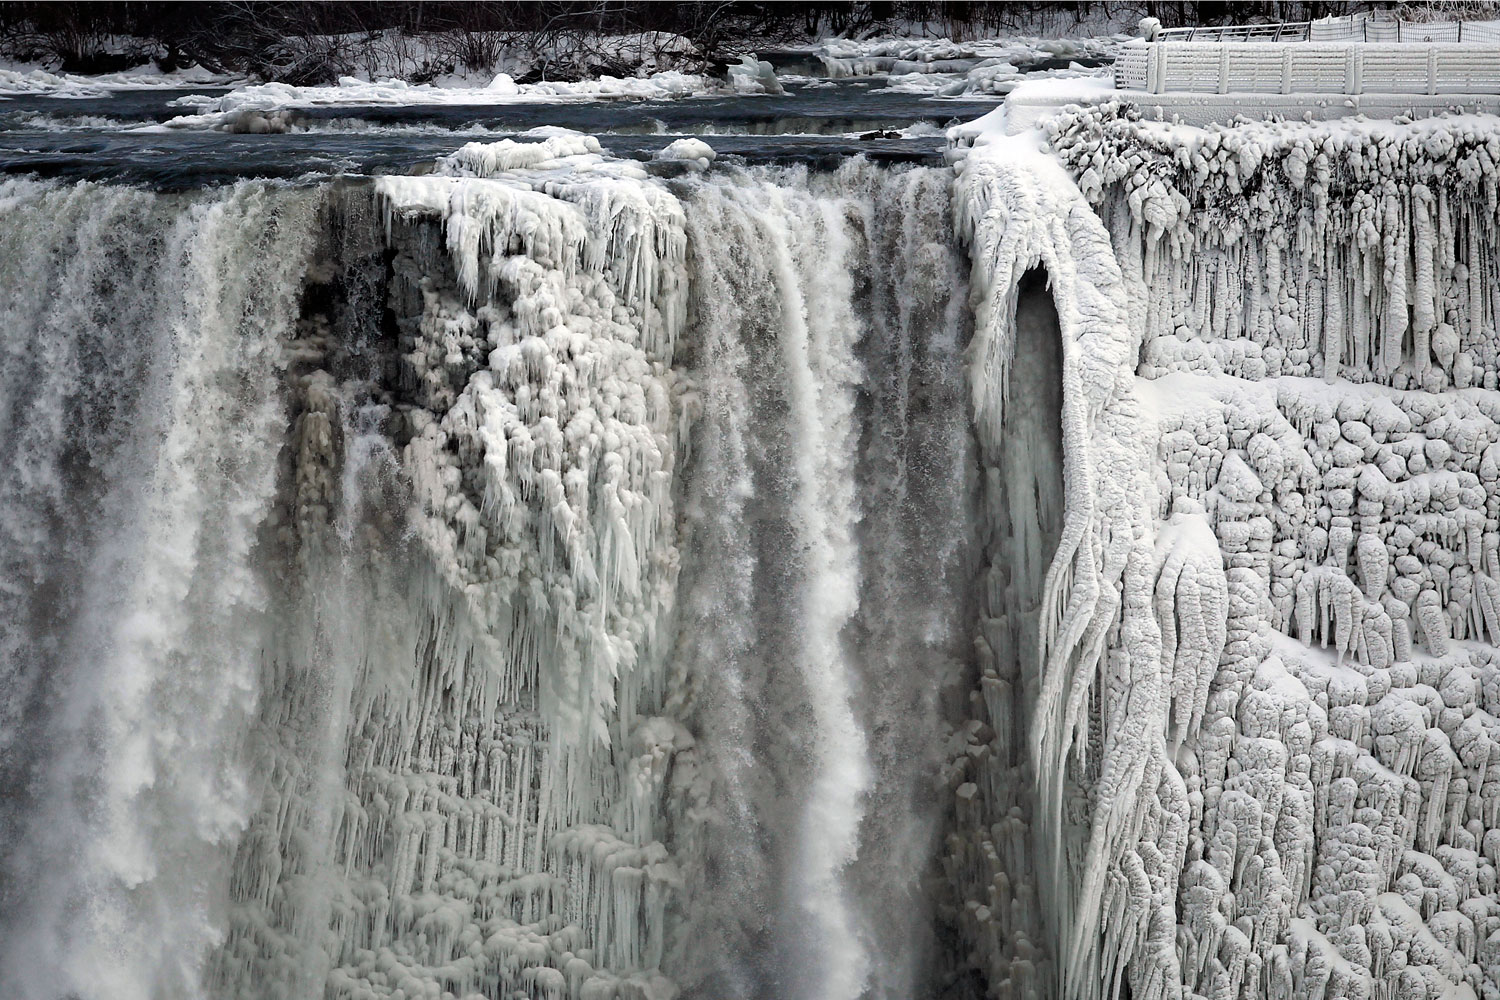 Jan. 8, 2014. The U.S. side of the Niagara Falls is pictured in Ontario, Canada.